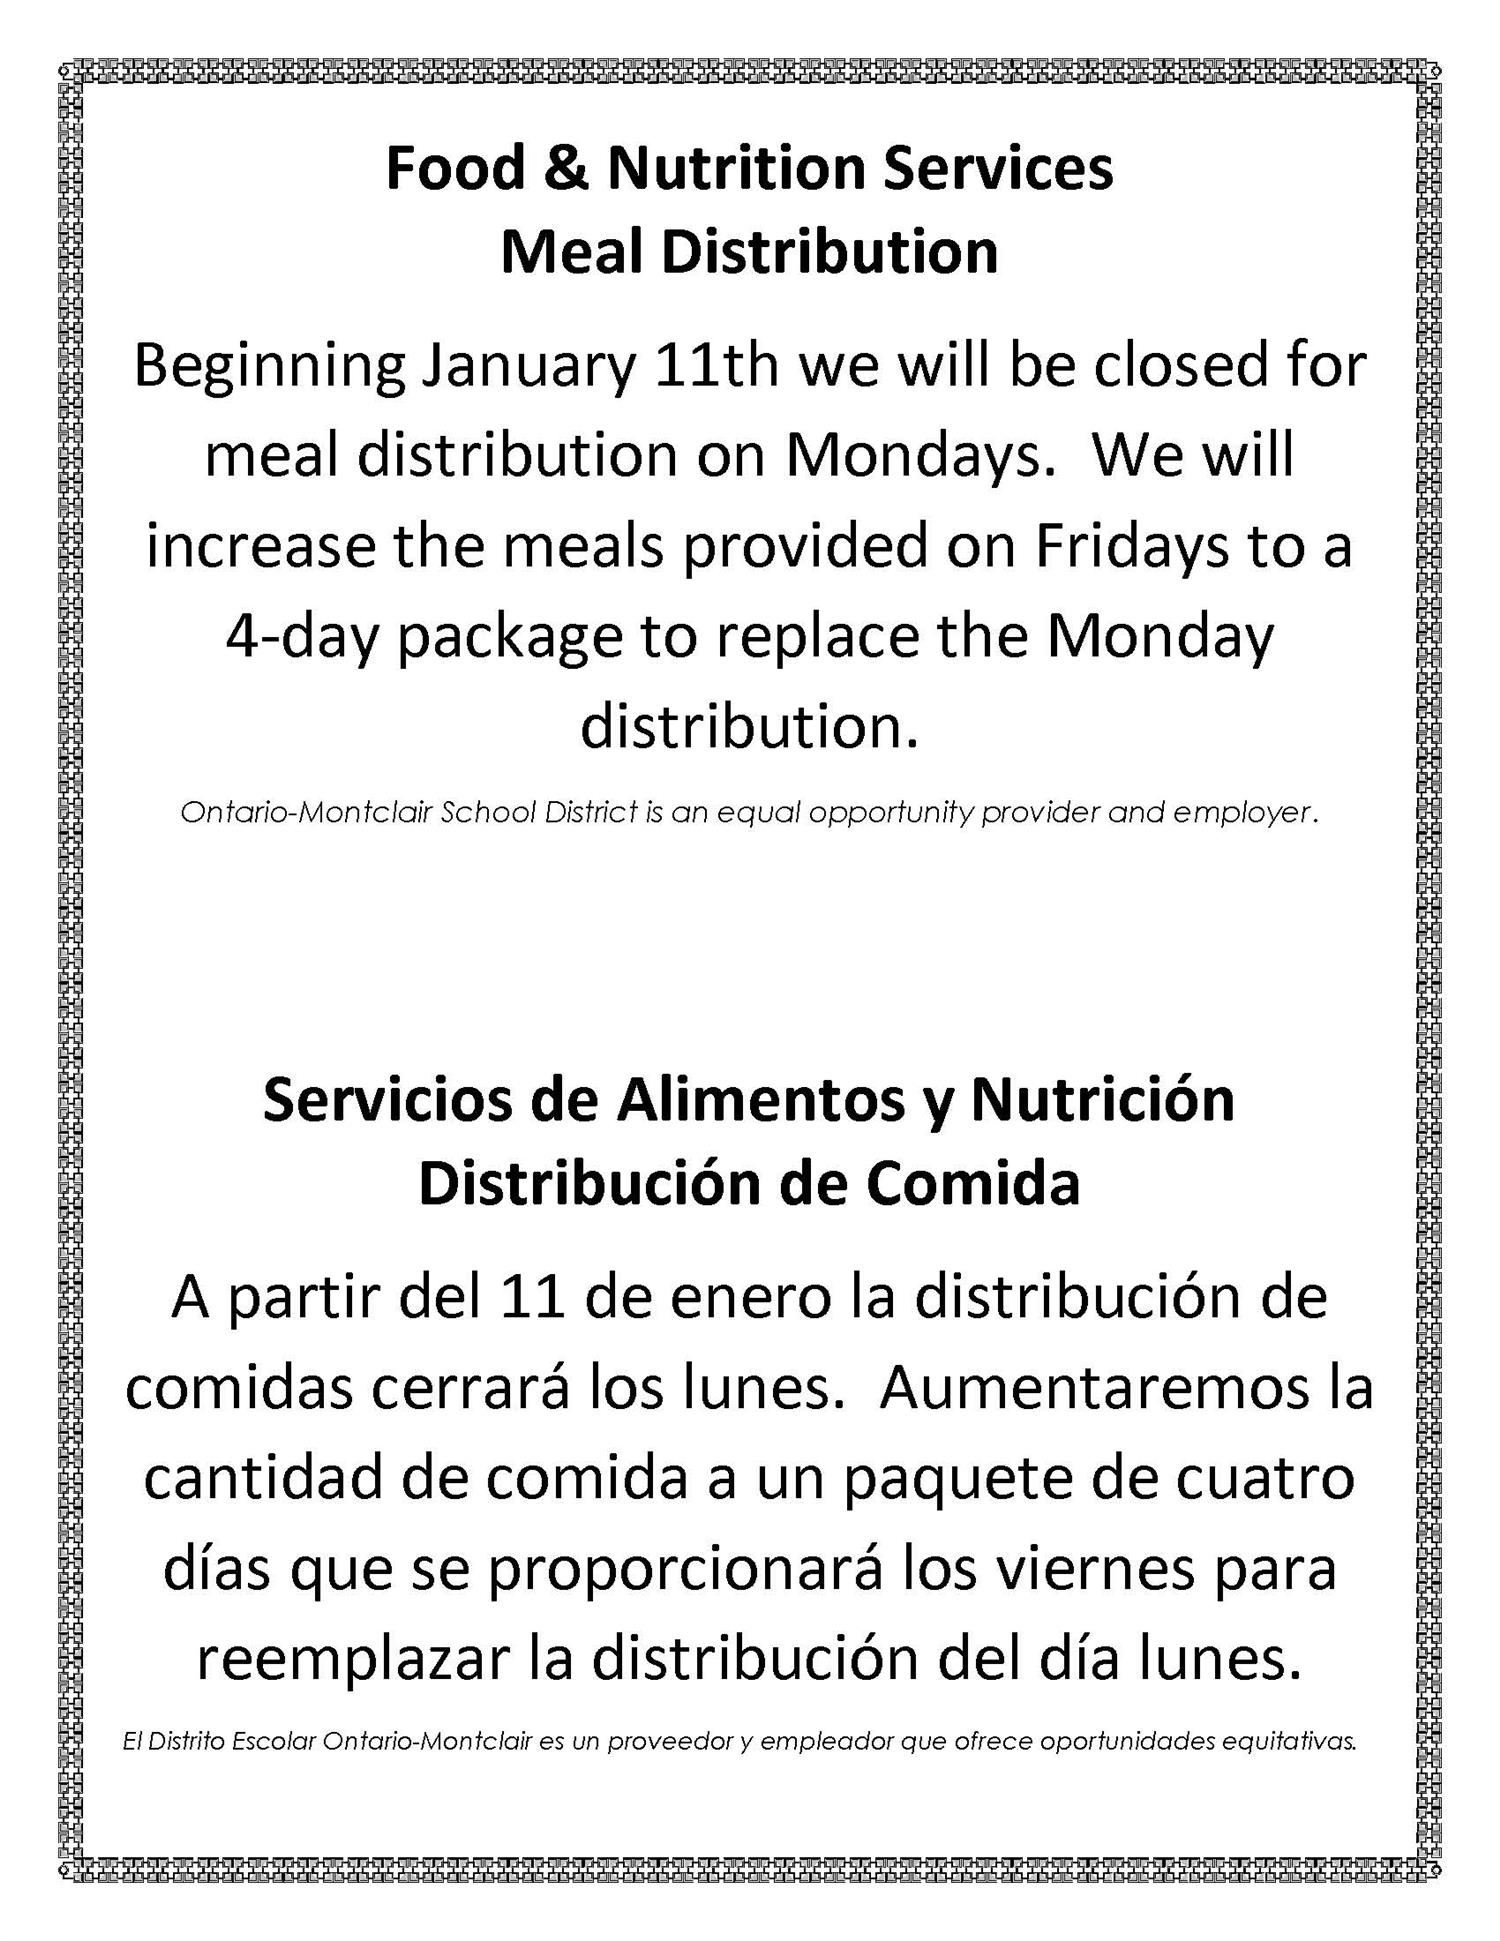 Food & Nutrition Services Meal Distribution Flyer